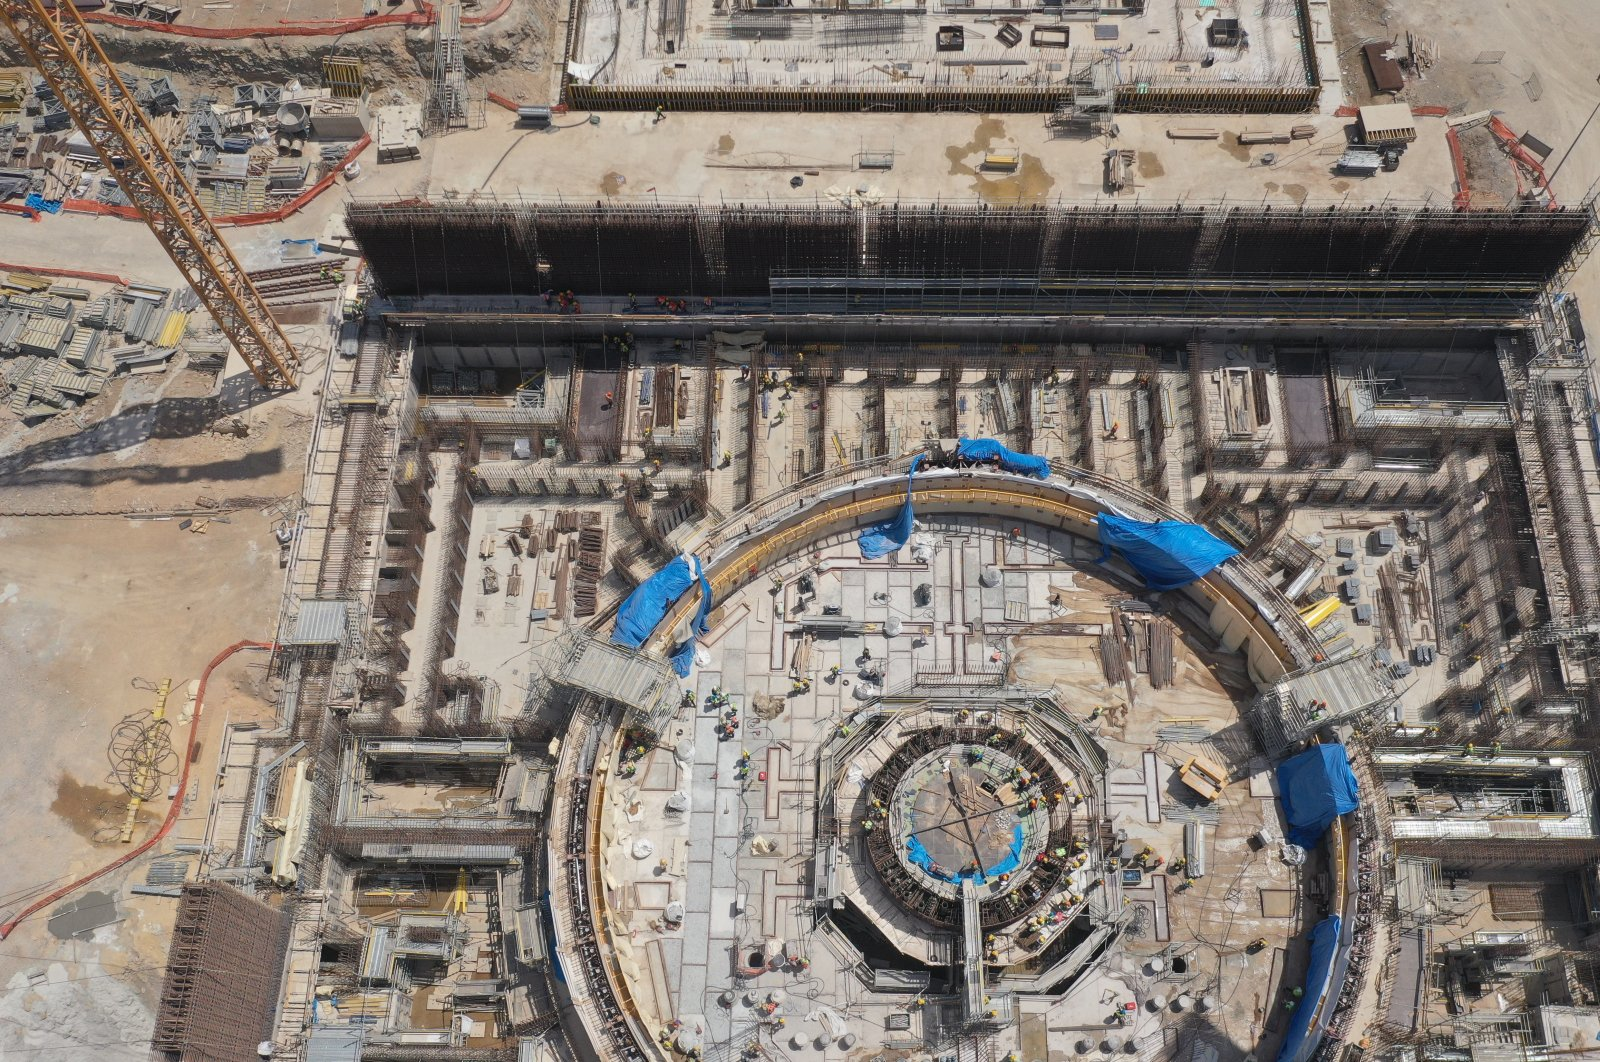 Construction work continues at Akkuyu Nuclear Power Plant (NGS) in the Gülnar district of southern Turkey's Mersin province, June 26, 2020. (Photo by Energy and Natural Resources Ministry via AA)